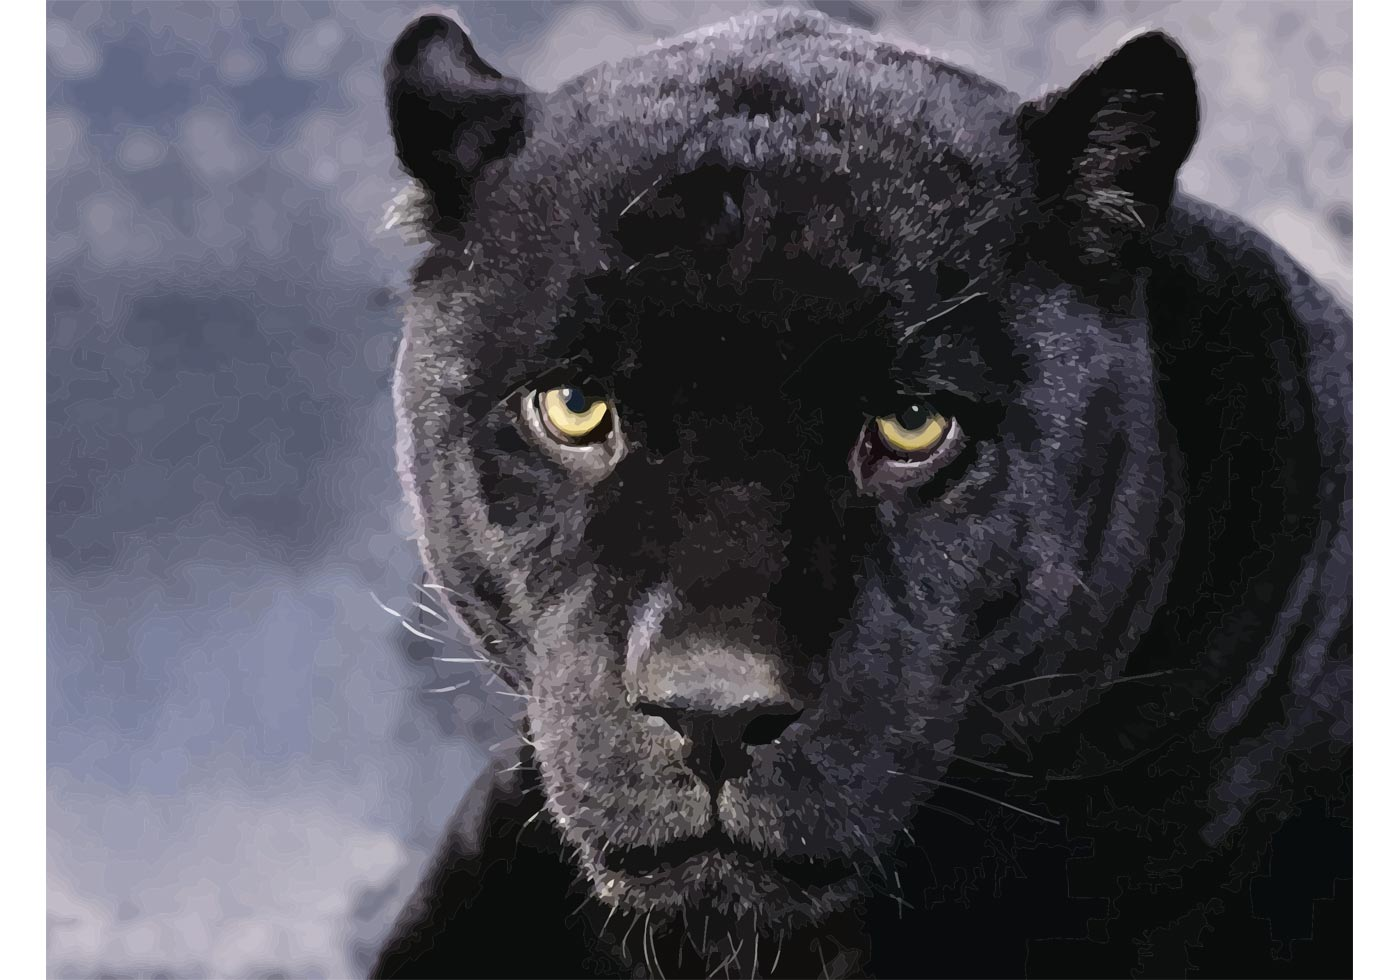 Black Panther Image - Download Free Vector Art, Stock ... - photo#35